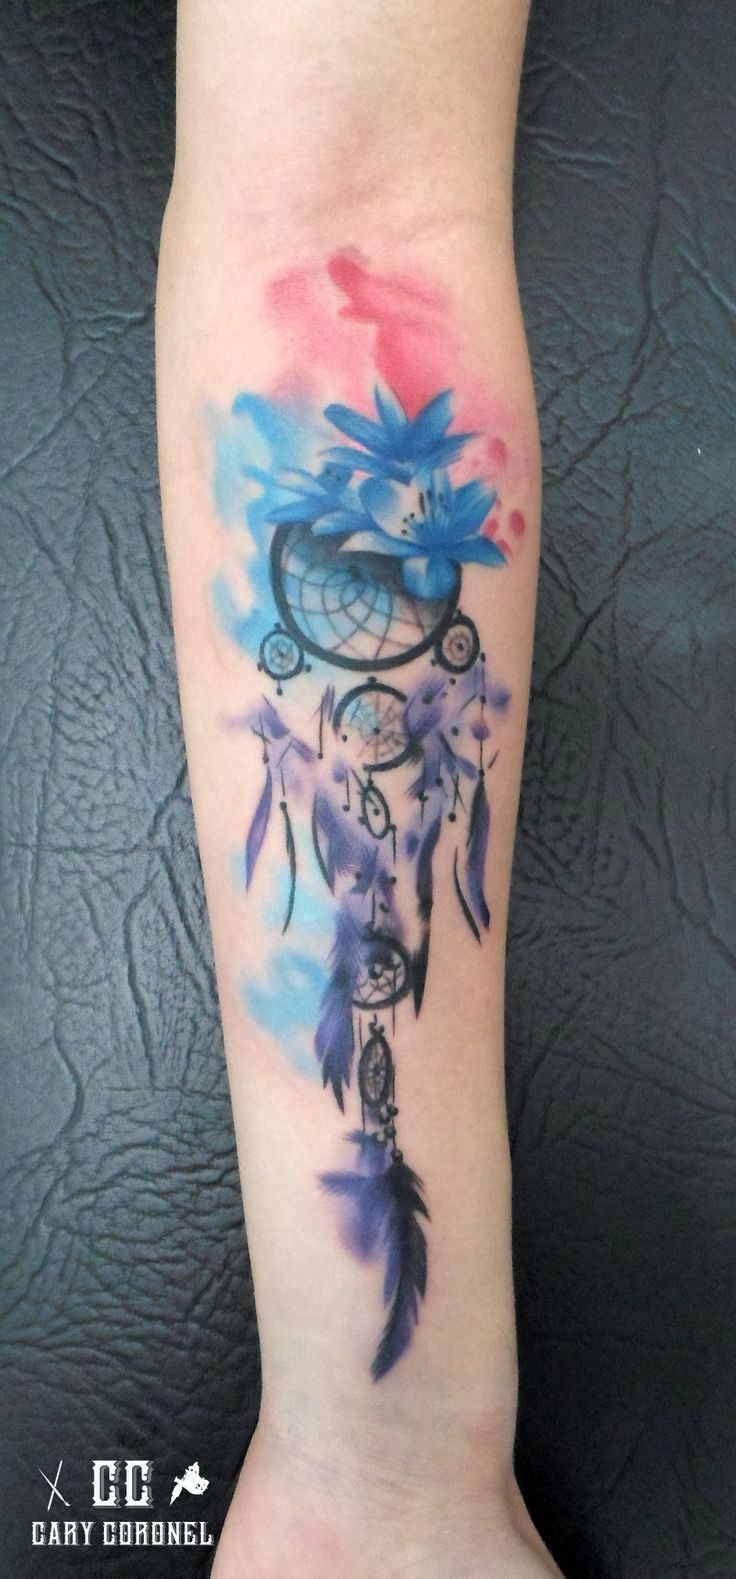 Resultado De Imagen Para Compass Dreamcatcher Tattoo Tattoos Pinterest Tattoo Tatoo And Ideas And Designs